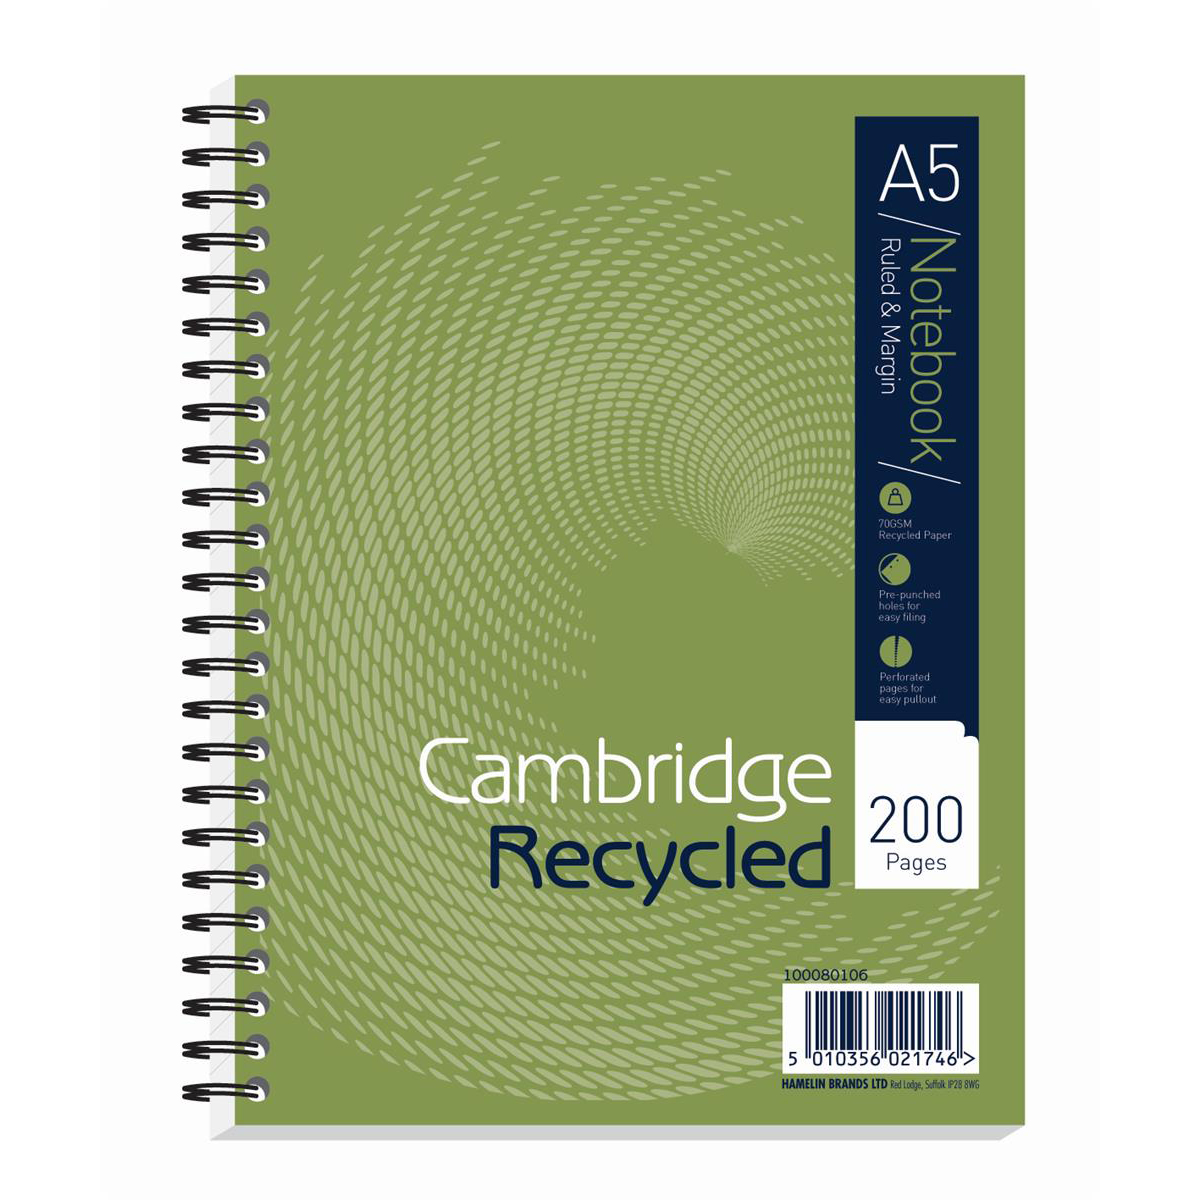 Cambridge Recycled Nbk Wirebound 70gsm Ruled Margin Perf Punched 2 Holes 200pp A5+ Ref 100080106 Pack 3